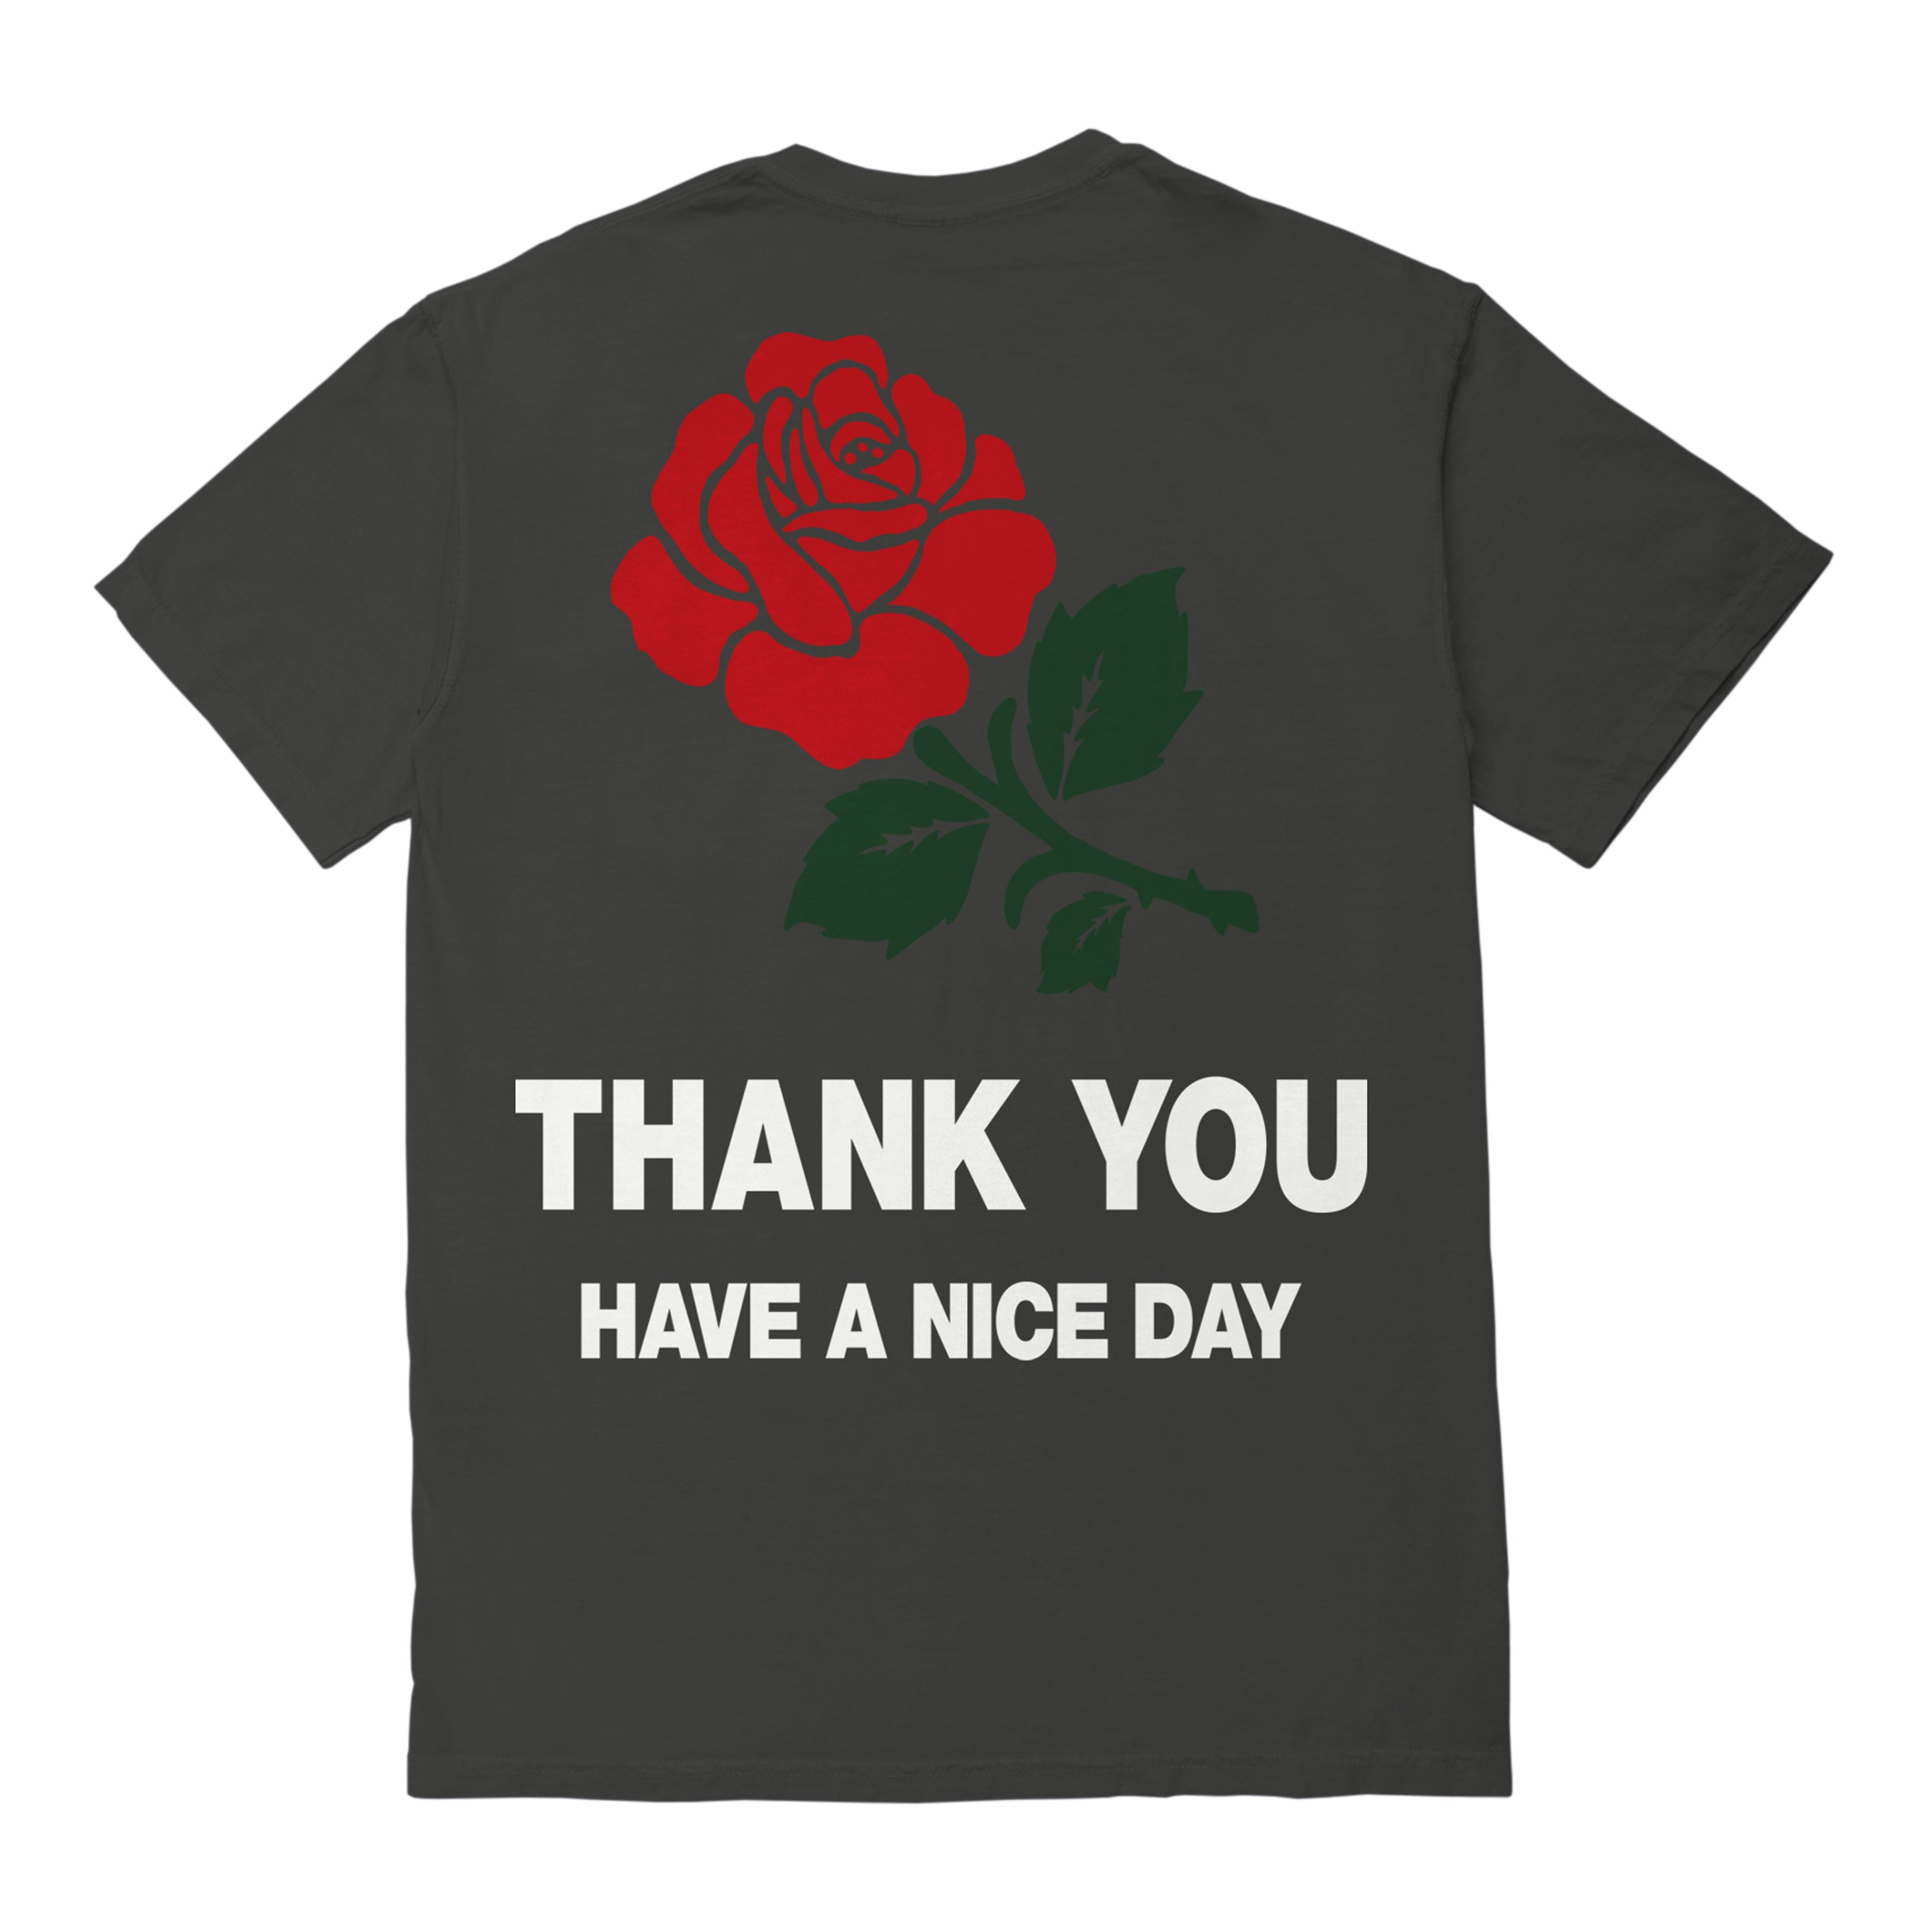 THANK YOU T-SHIRT (STONE)